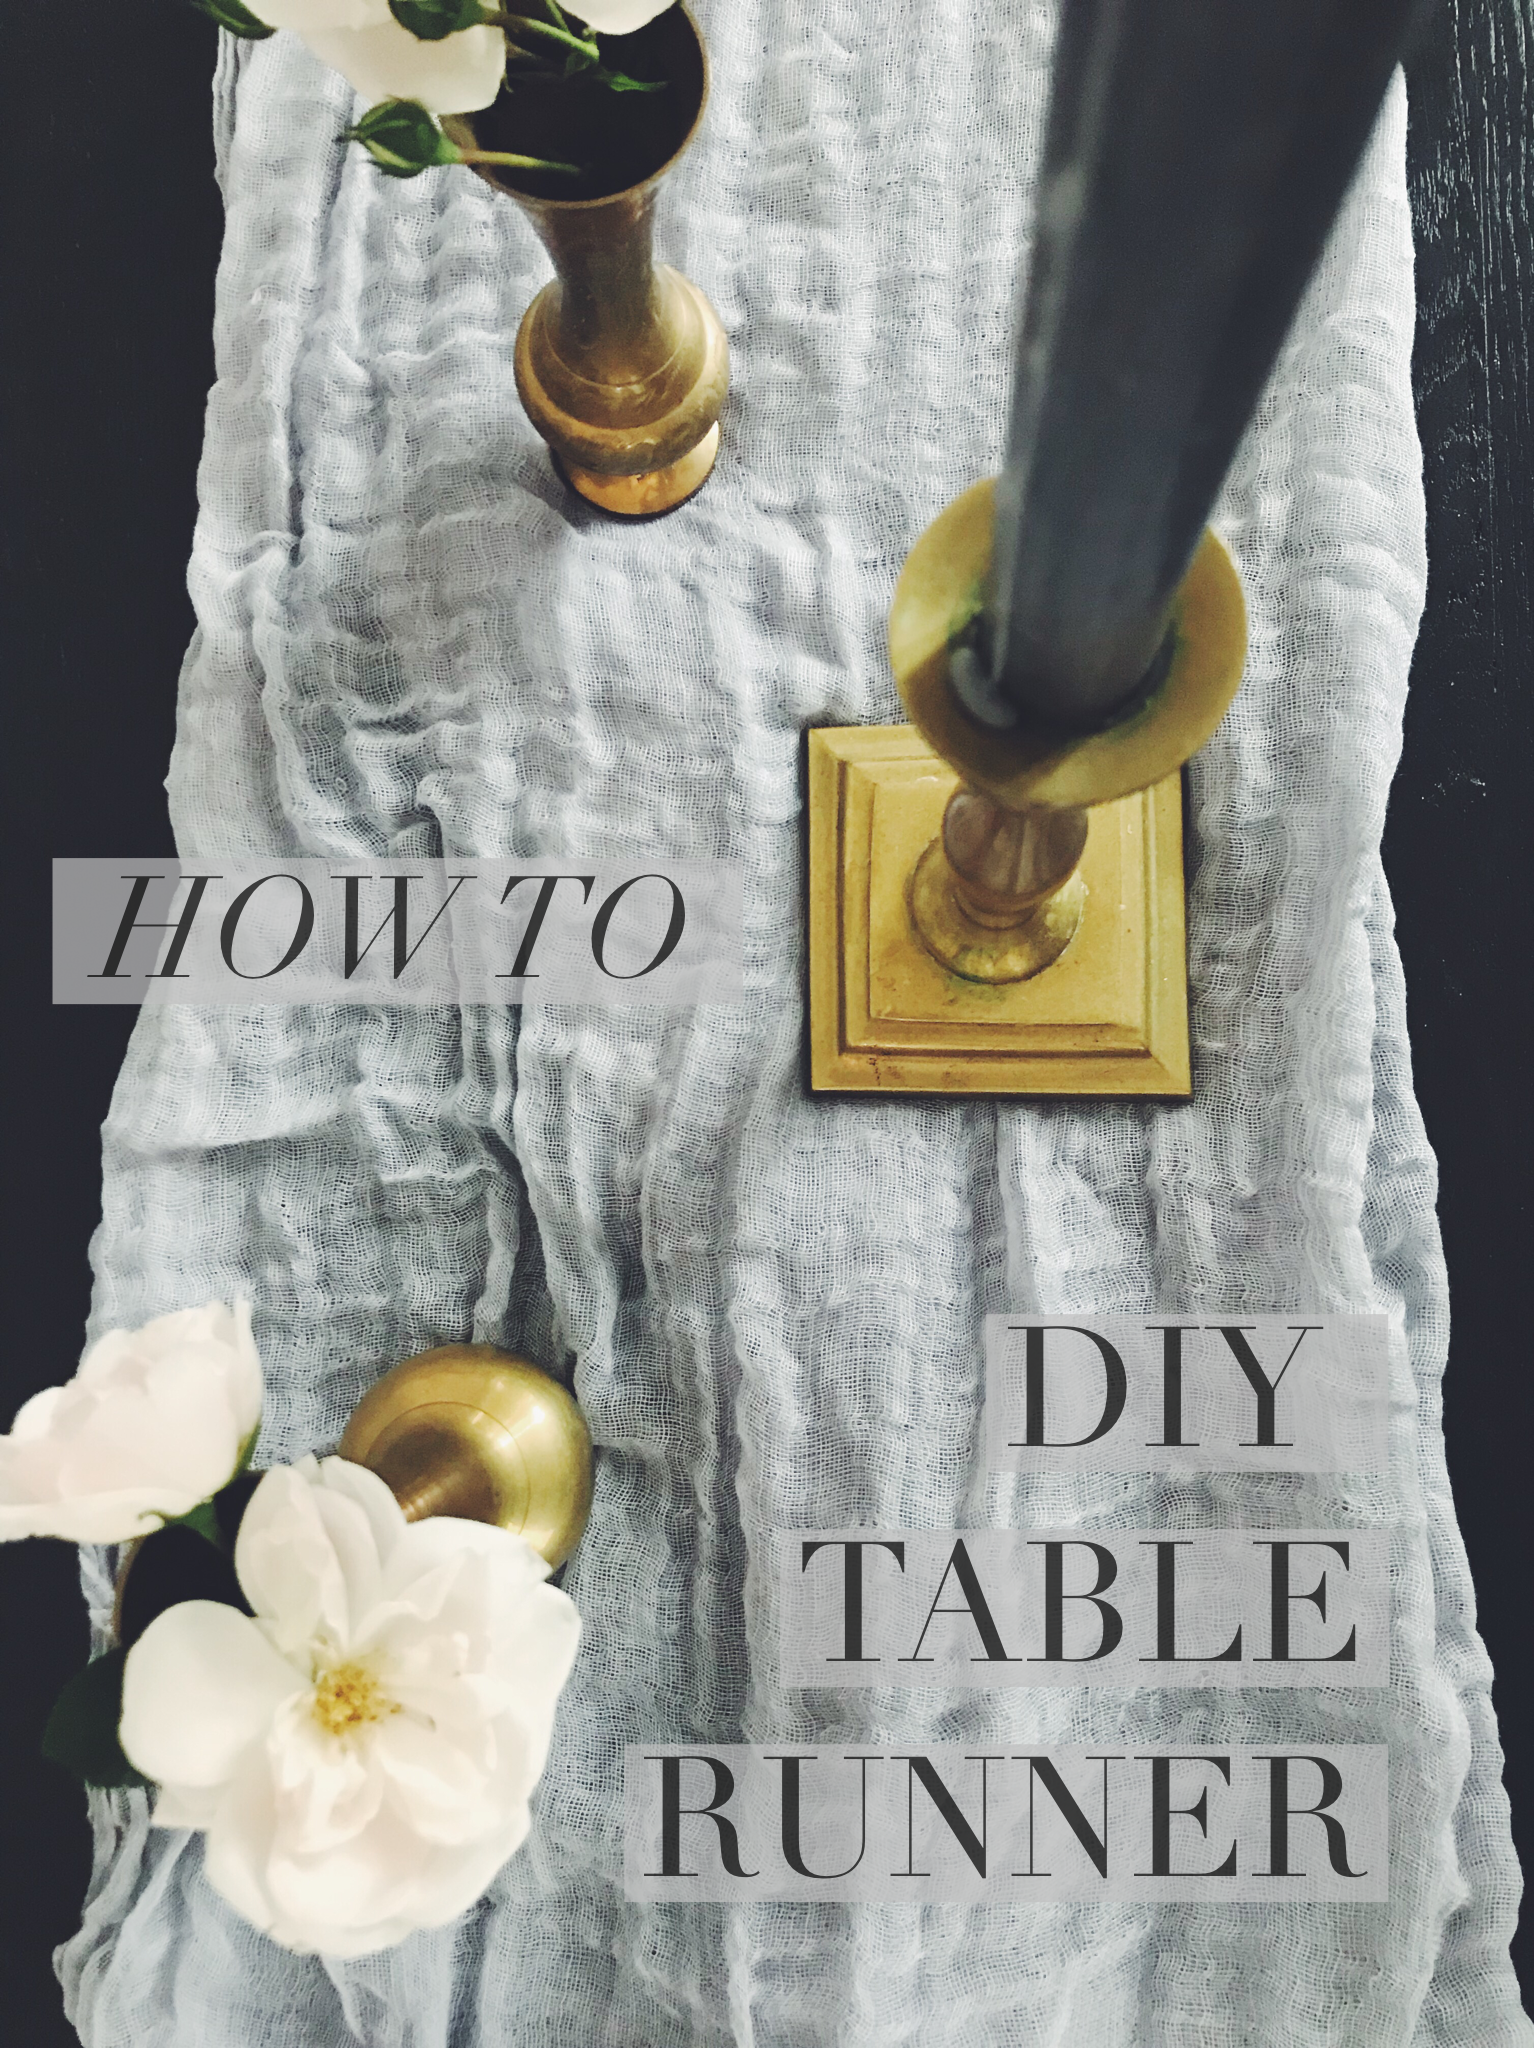 DIY Cheesecloth Table Runner | Wedding Table Runner | How-To